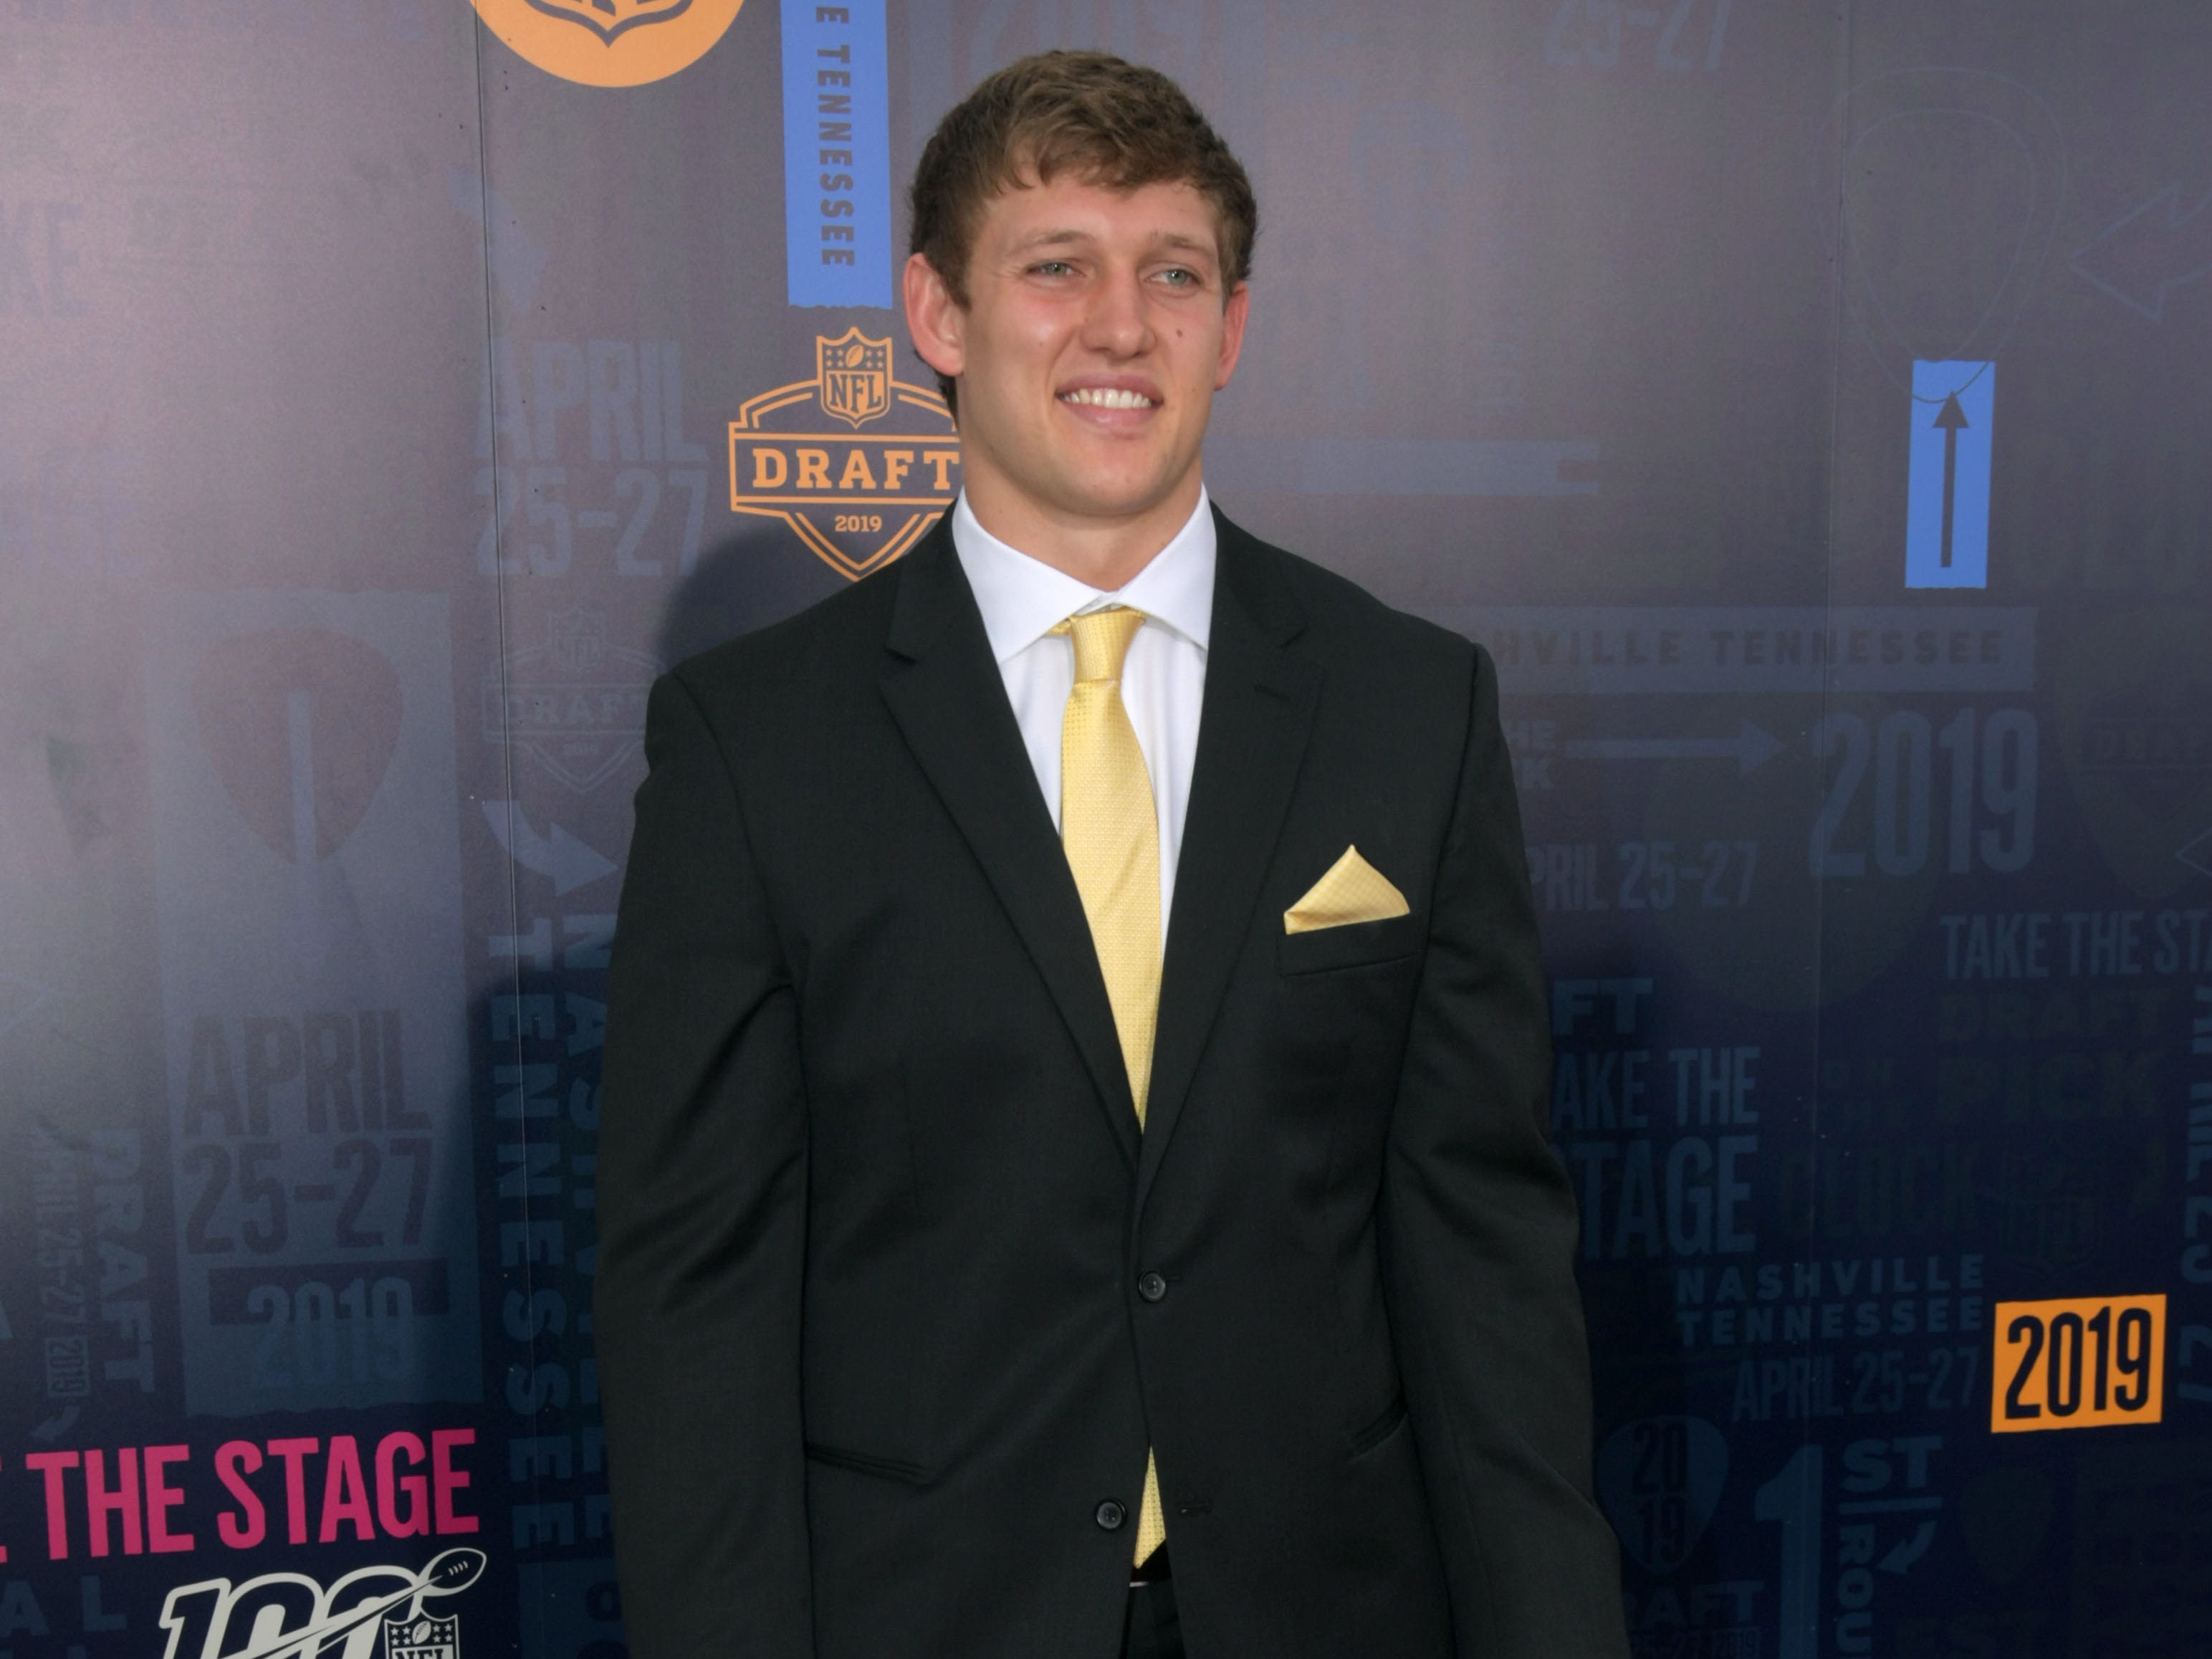 Apr 25, 2019; Nashville, TN, USA; T.J. Hockenson (Iowa) on the red carpet prior to the first round of the 2019 NFL Draft in Downtown Nashville.